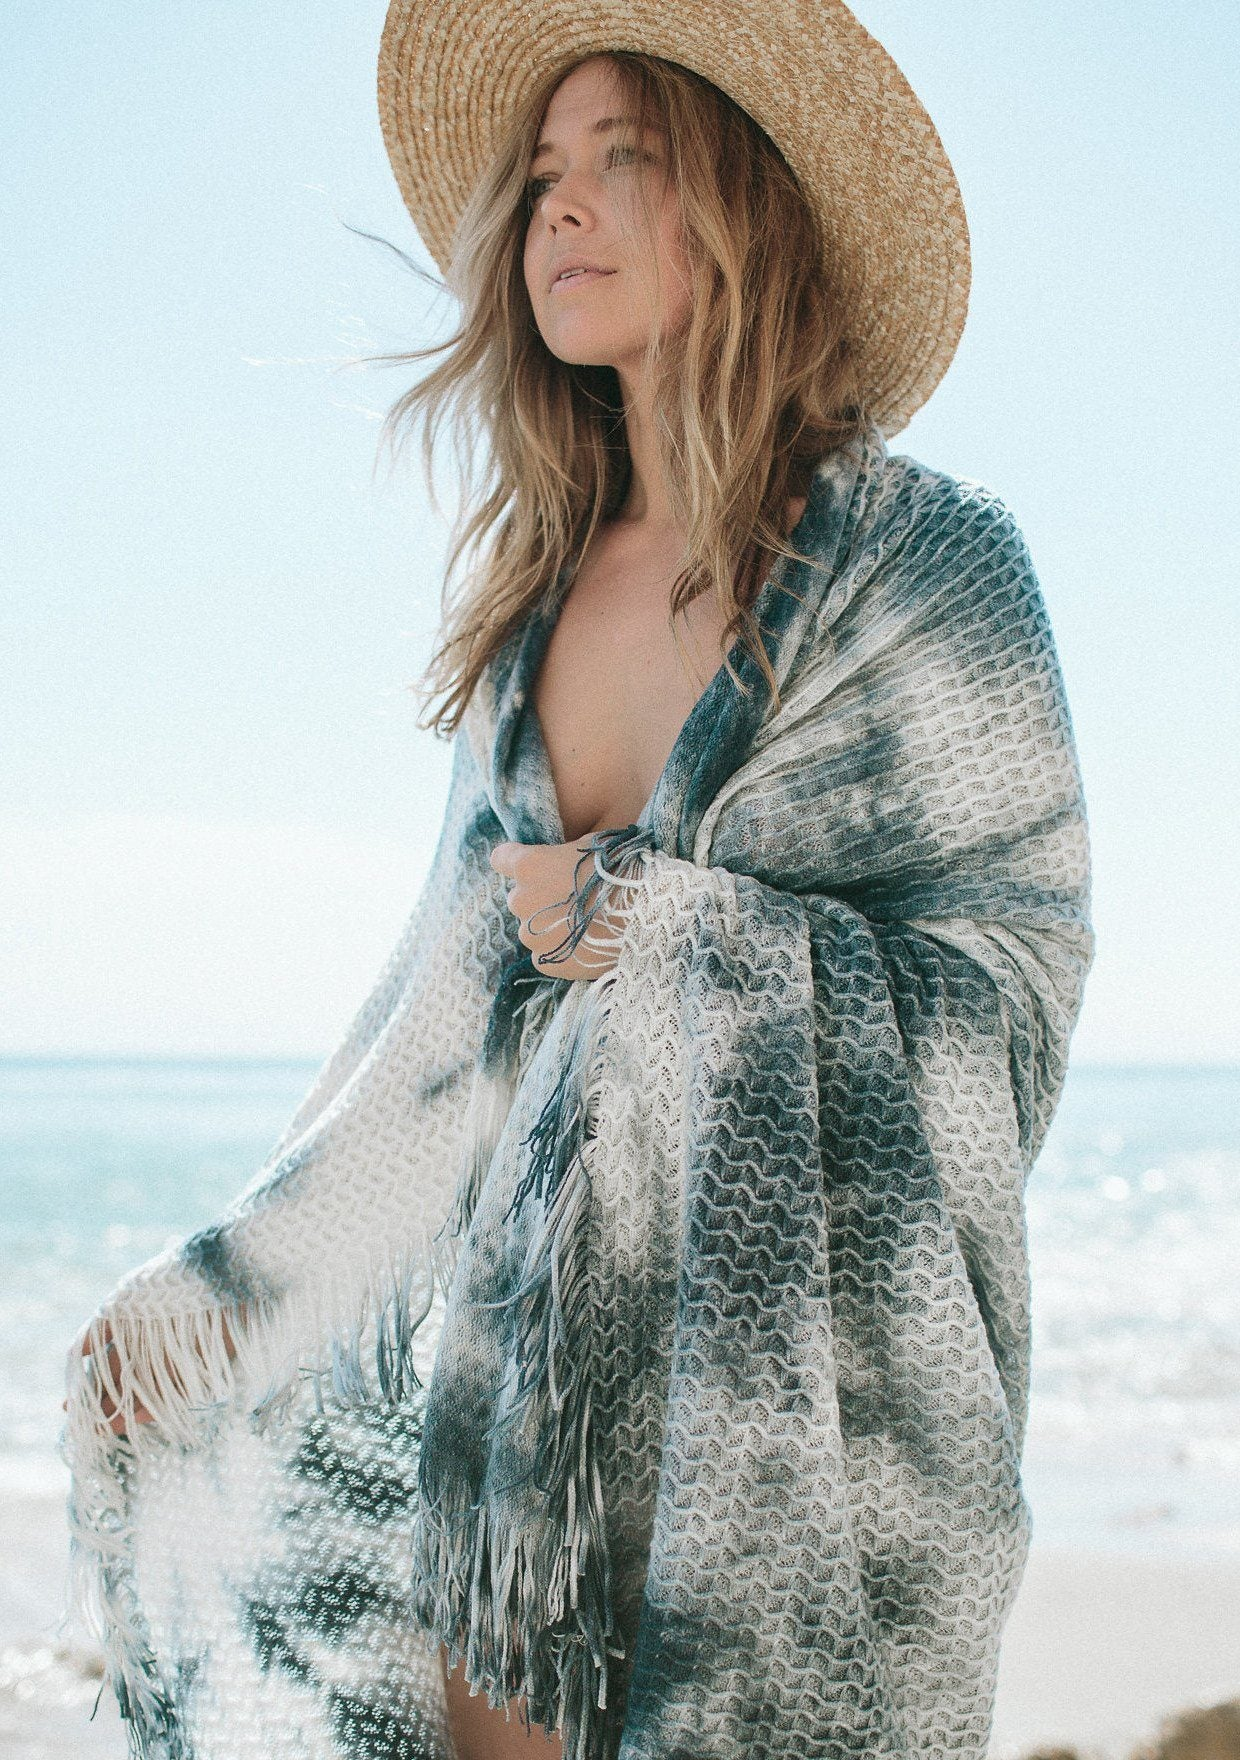 [Color: Indigo/Ivory] Beautiful beach vibes blue and white tie-dye throw blanket with fringe